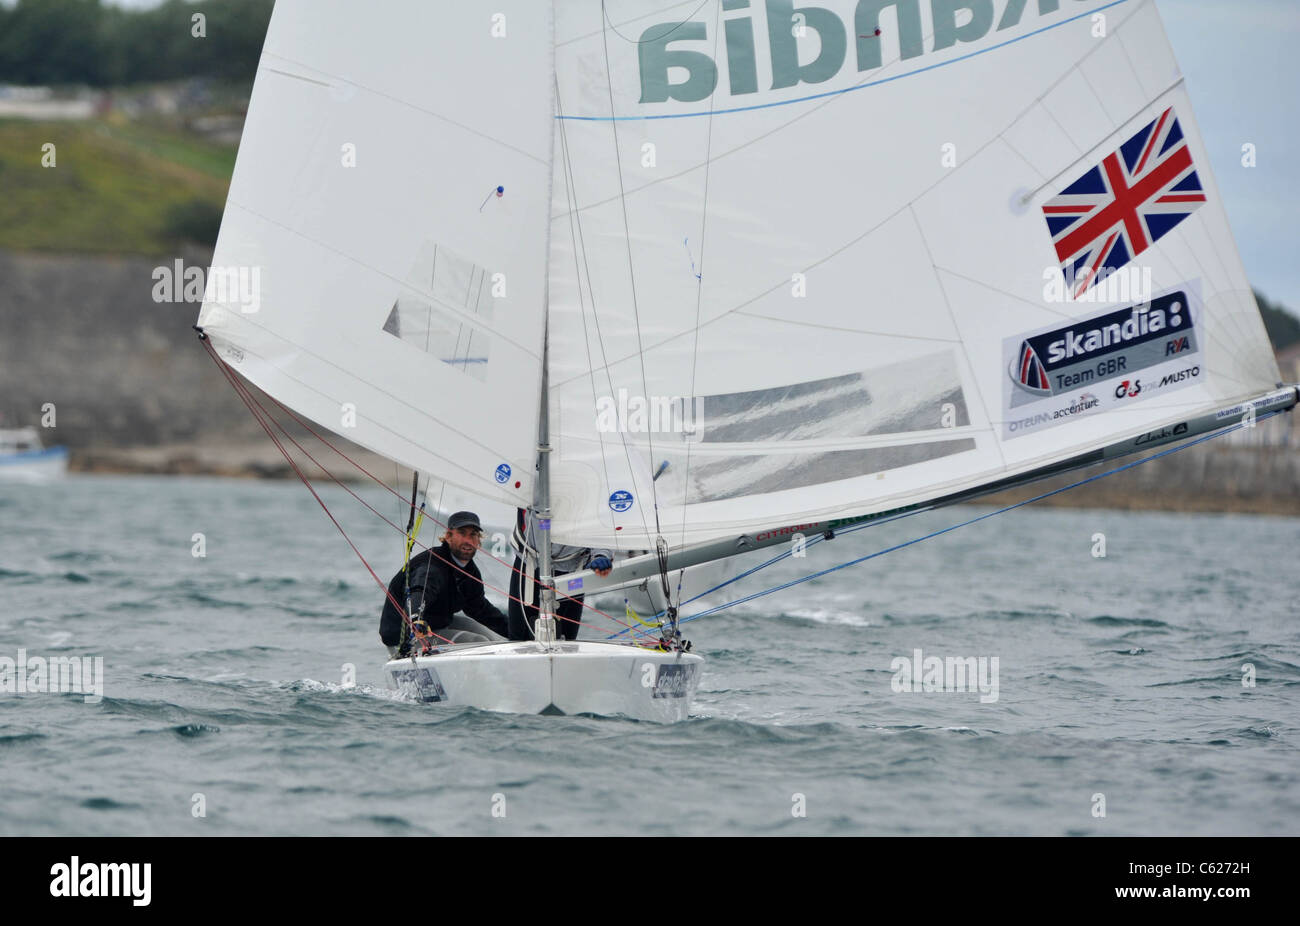 UK, Olympic Test Event, Iain Percy and Andrew Simpson after they won silver for Great Britain - Stock Image